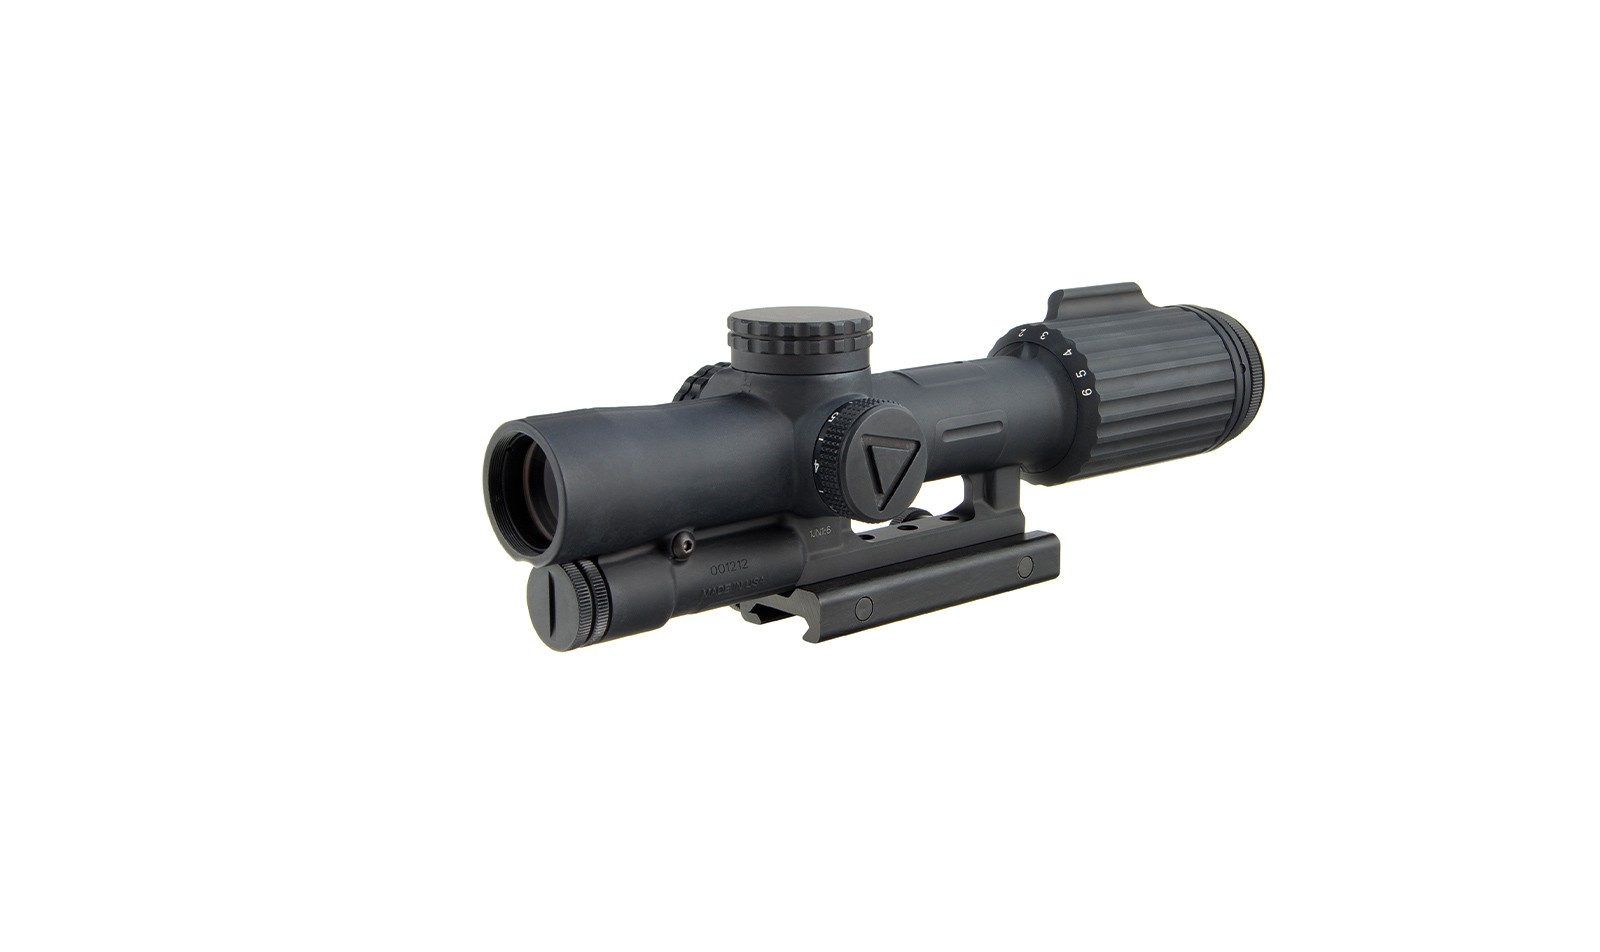 Trijicon VCOG® 1-6x24 LED Riflescope- MIL